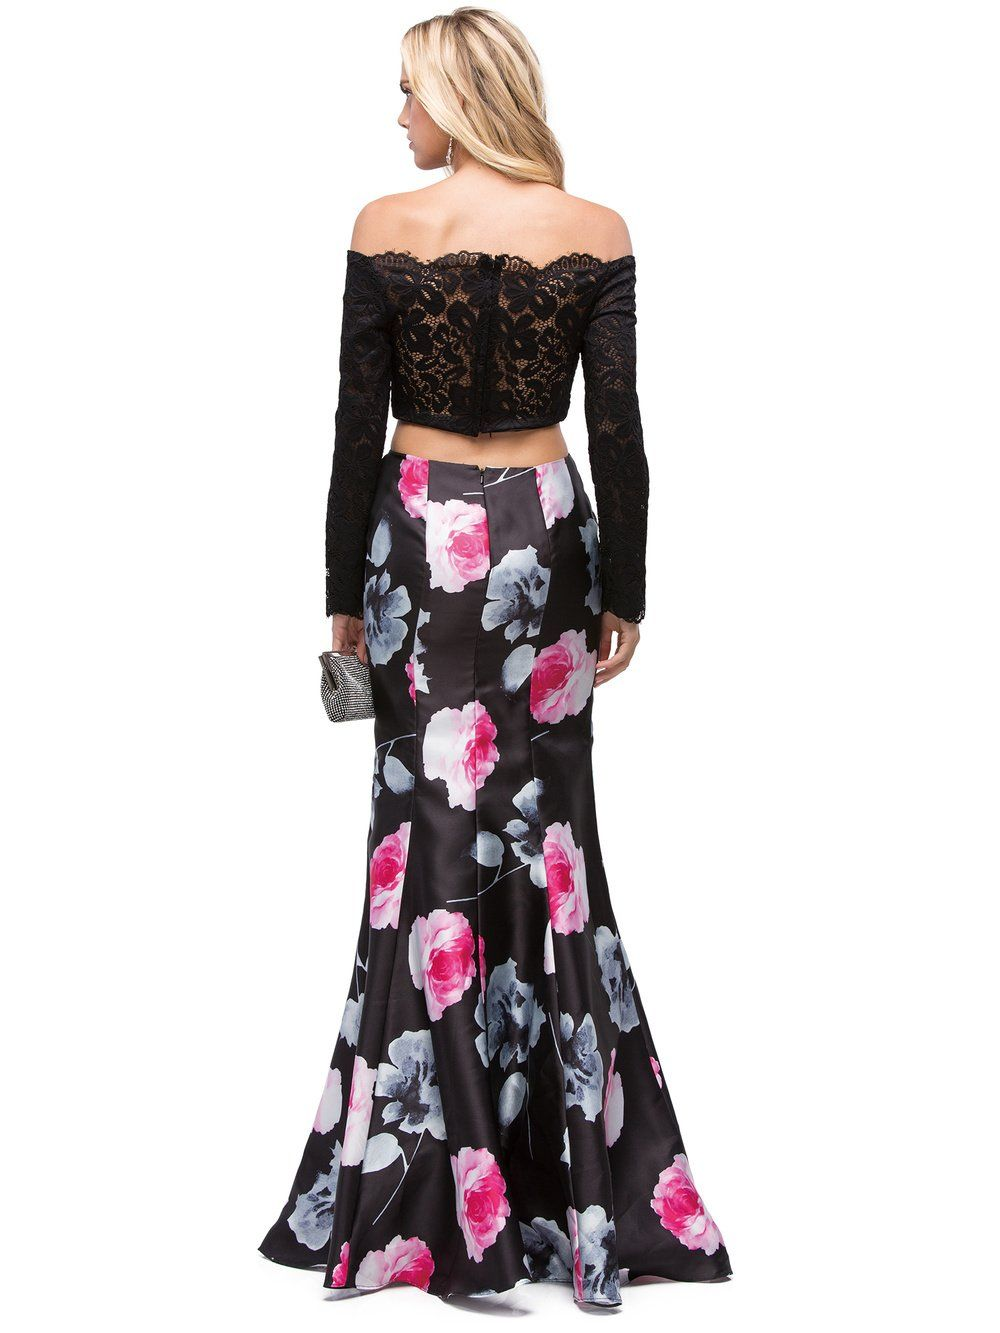 Dq lace off the shoulder long sleeved mermaid with floral